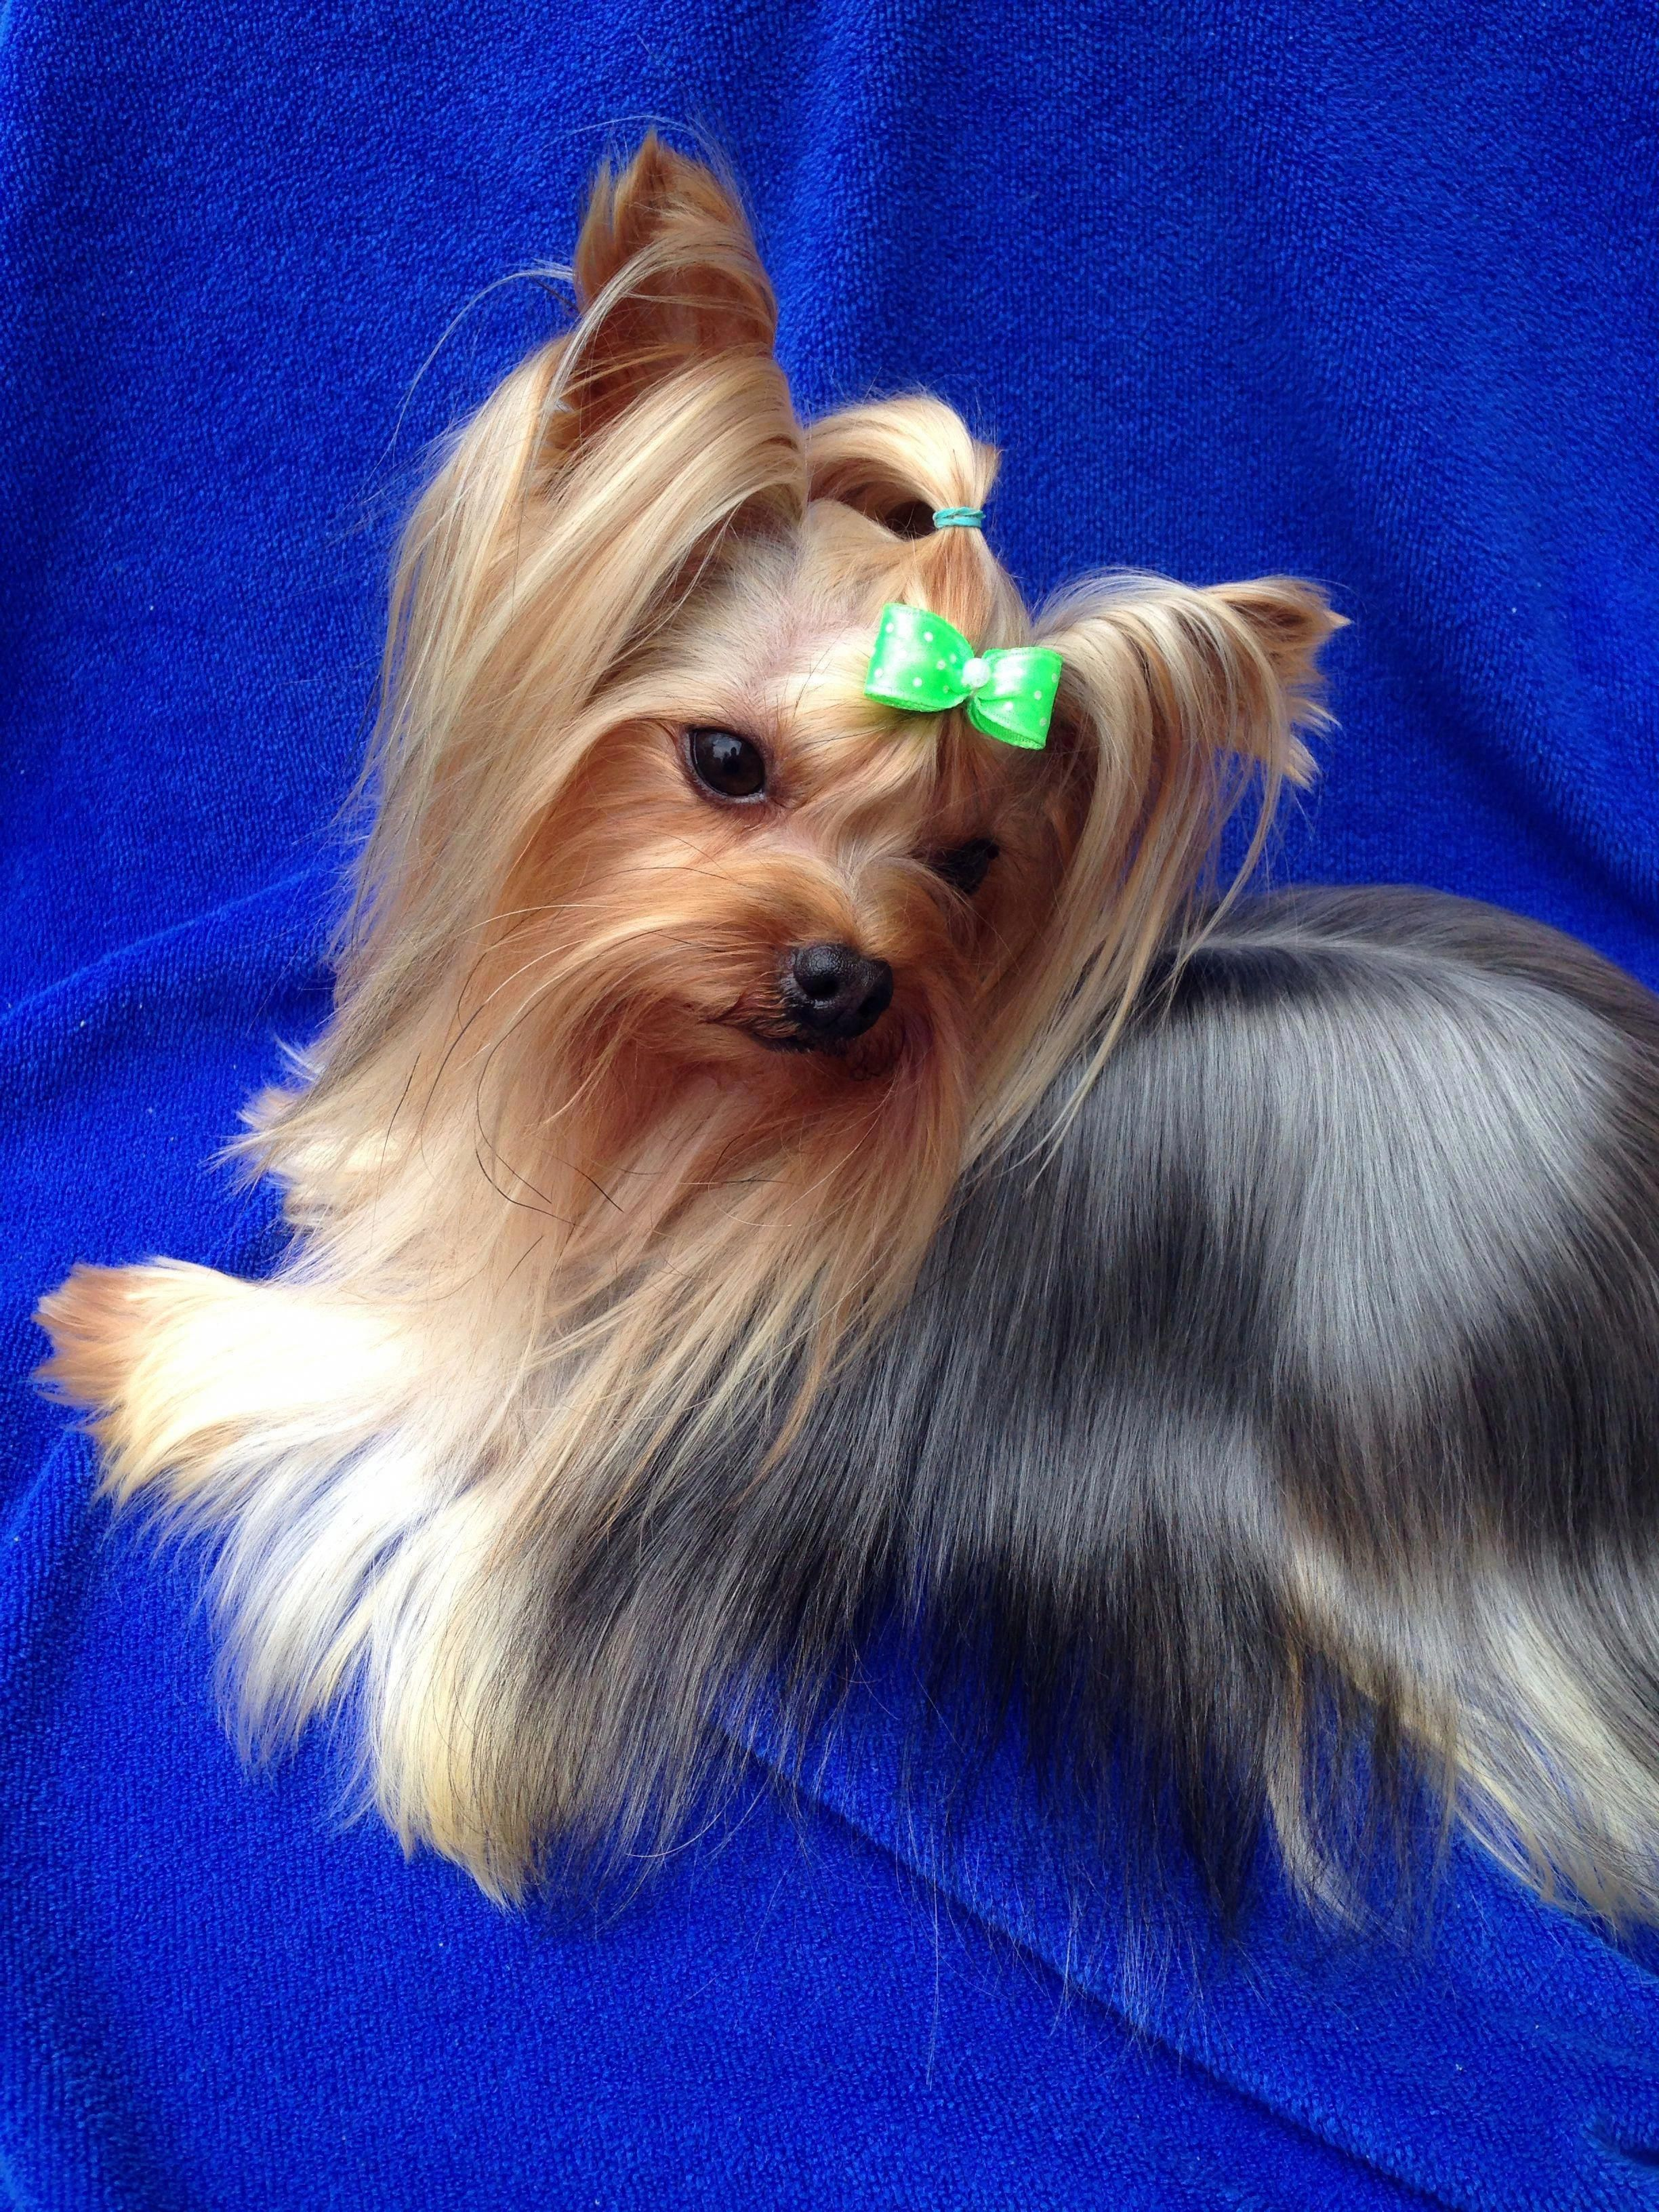 Discover the brave yorkie dog and kids